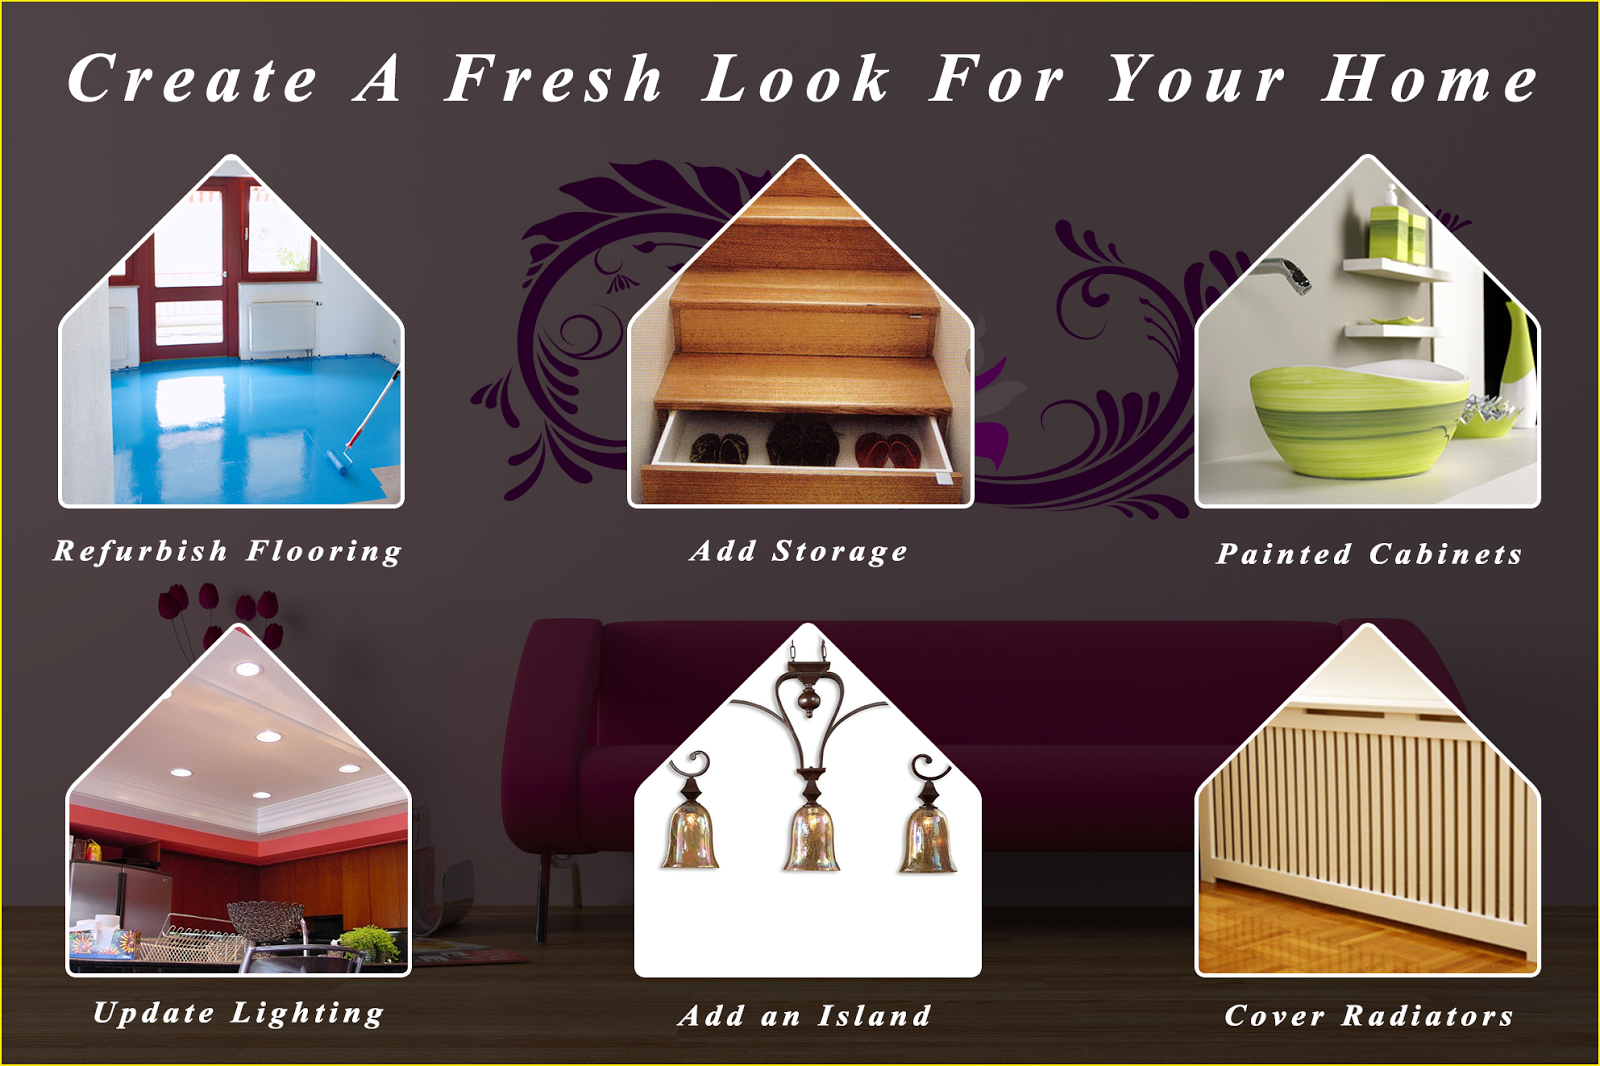 Create A Fresh Look For Your Home